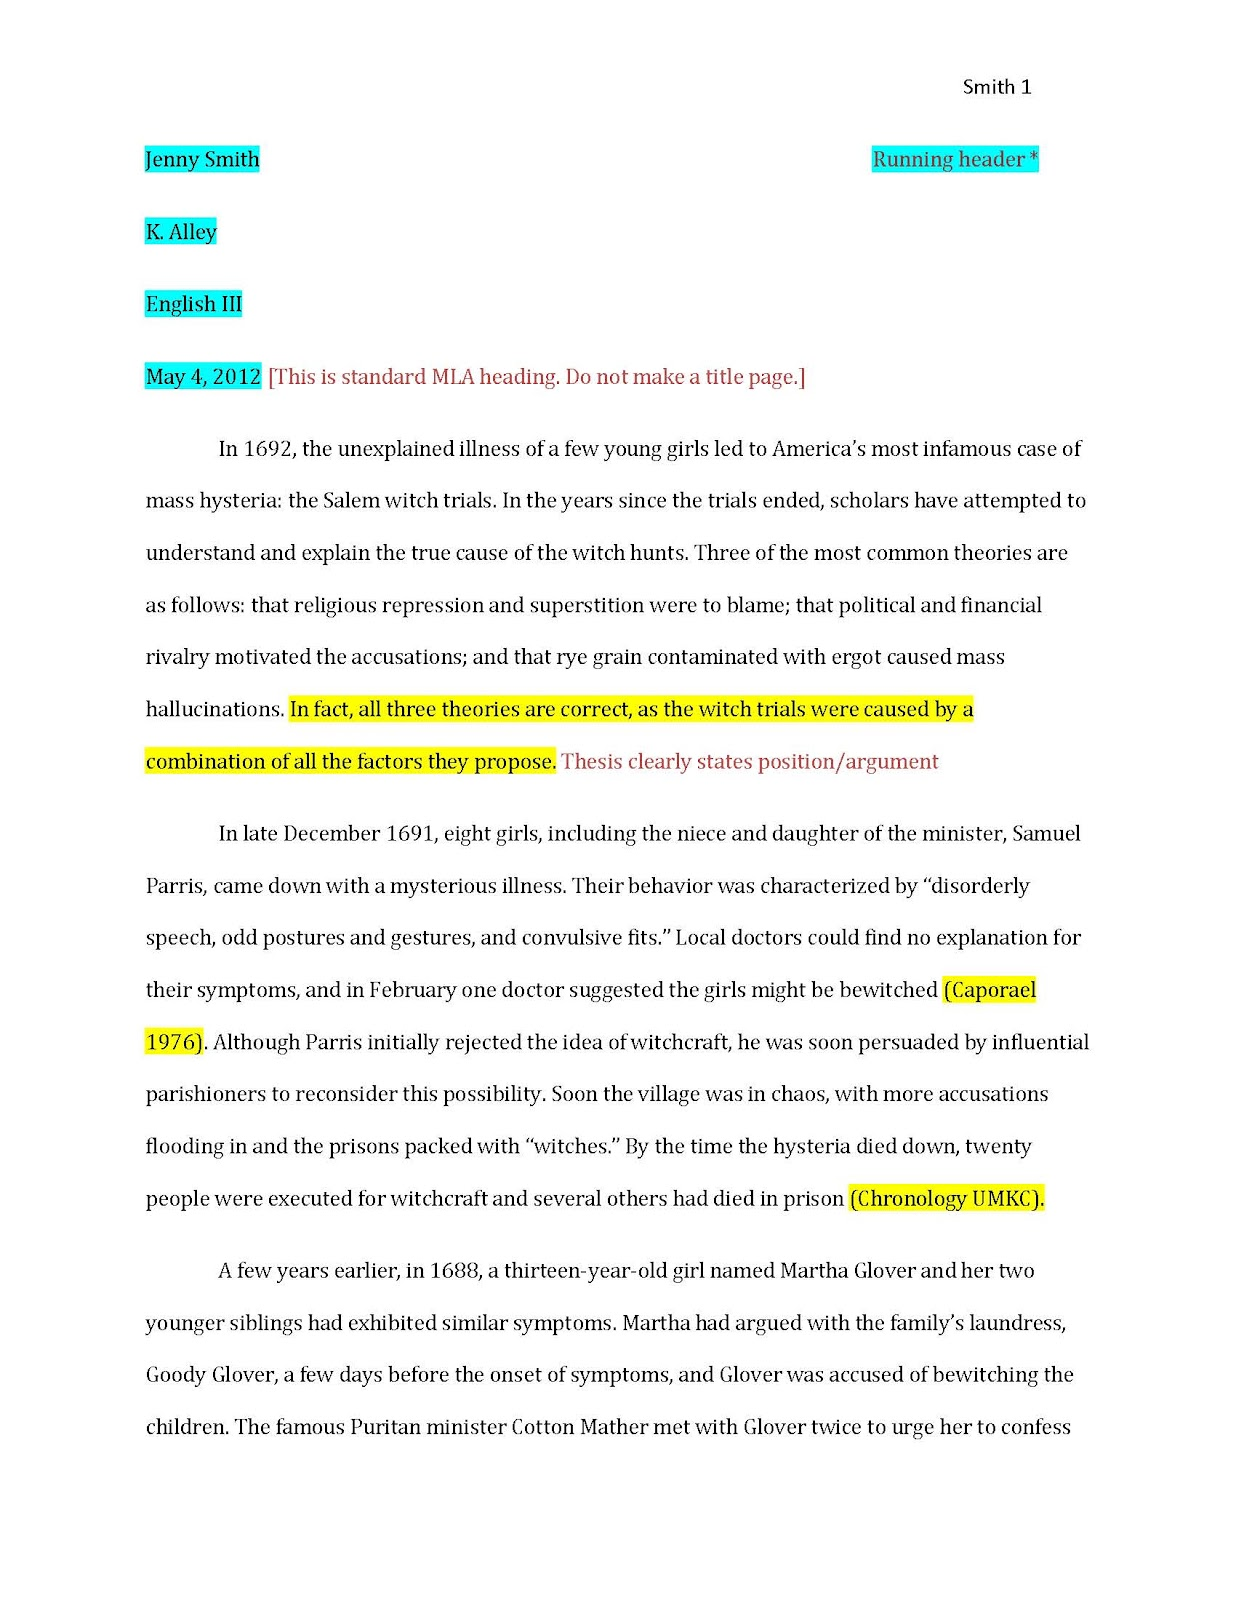 012 Examplepaper Page 1 Research Paper Mla Citations In Striking Examples Full